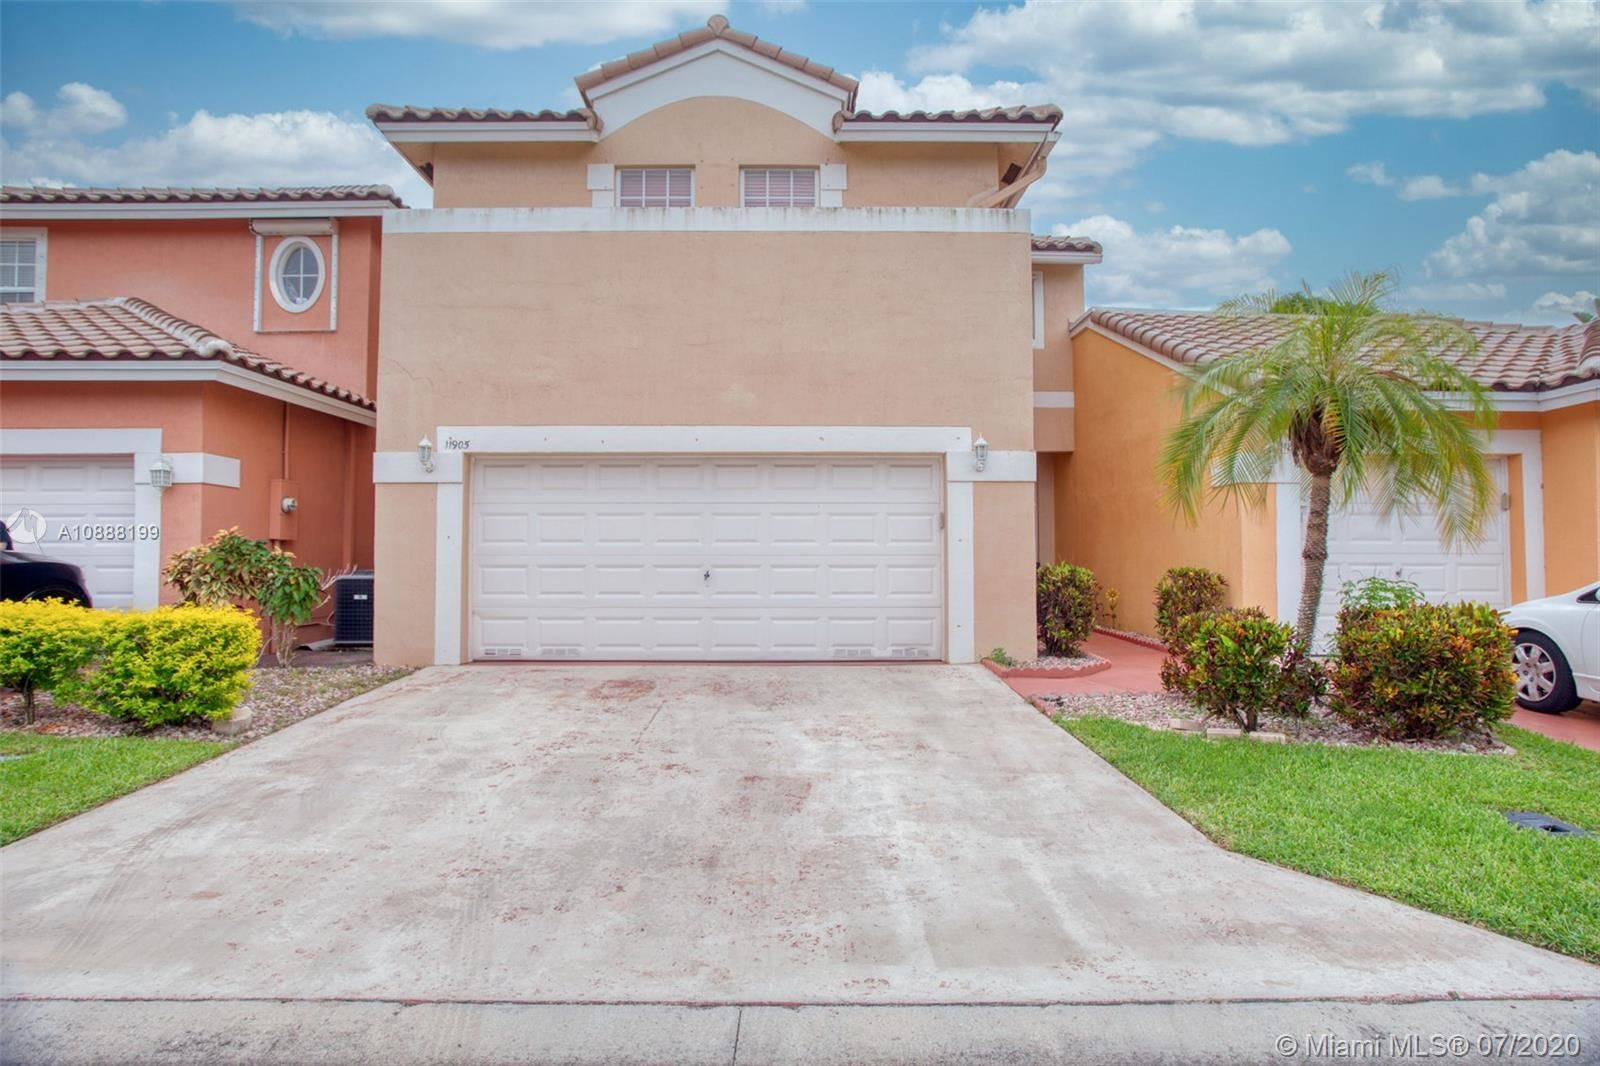 11905 NW 57th St #11905, Coral Springs, FL 33076 - #: A10888199